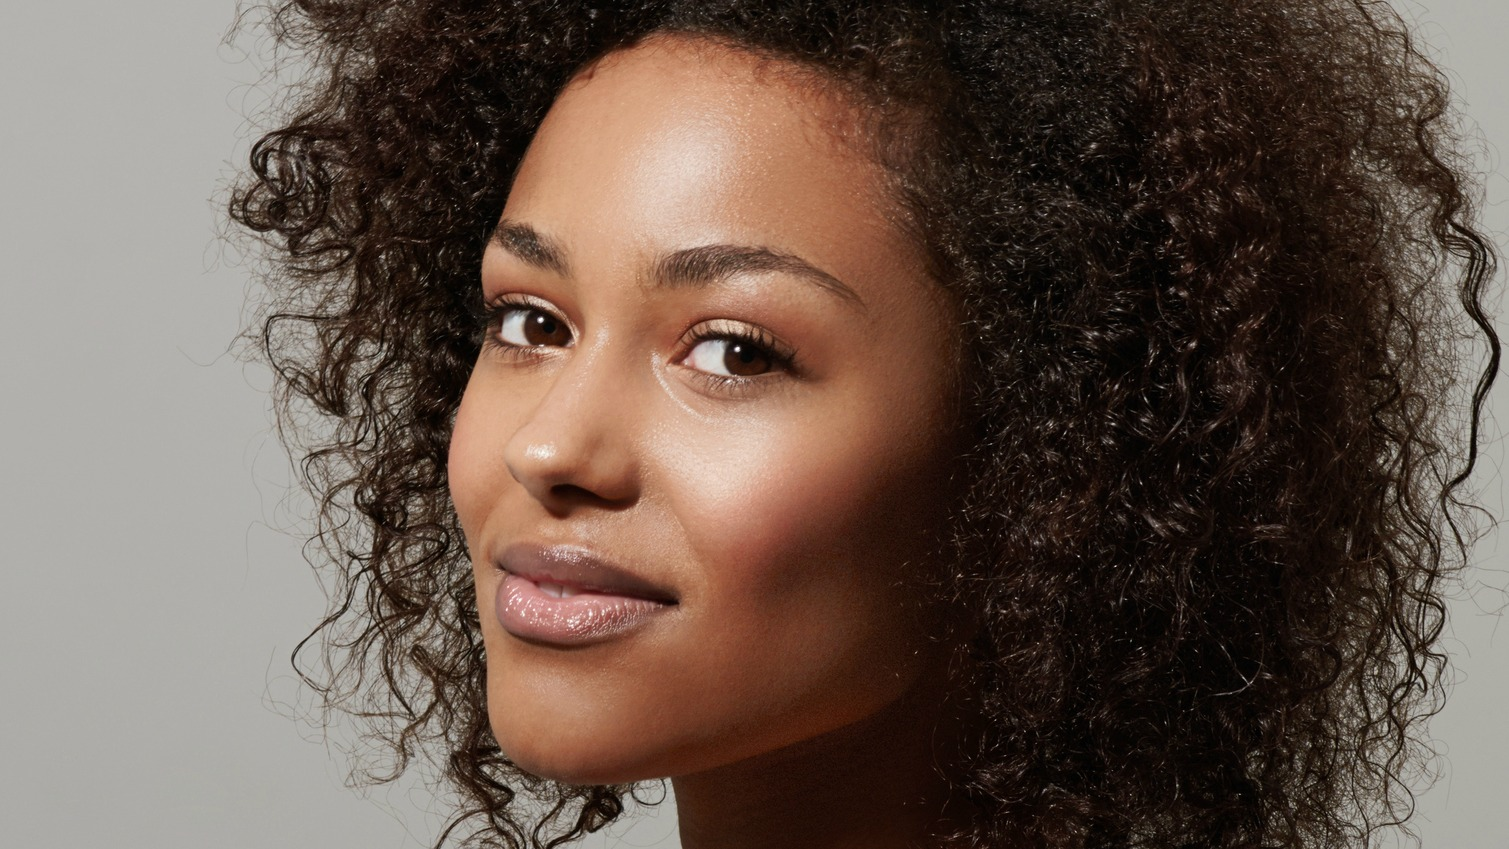 12 Best Tips for Clear Skin  StyleCaster